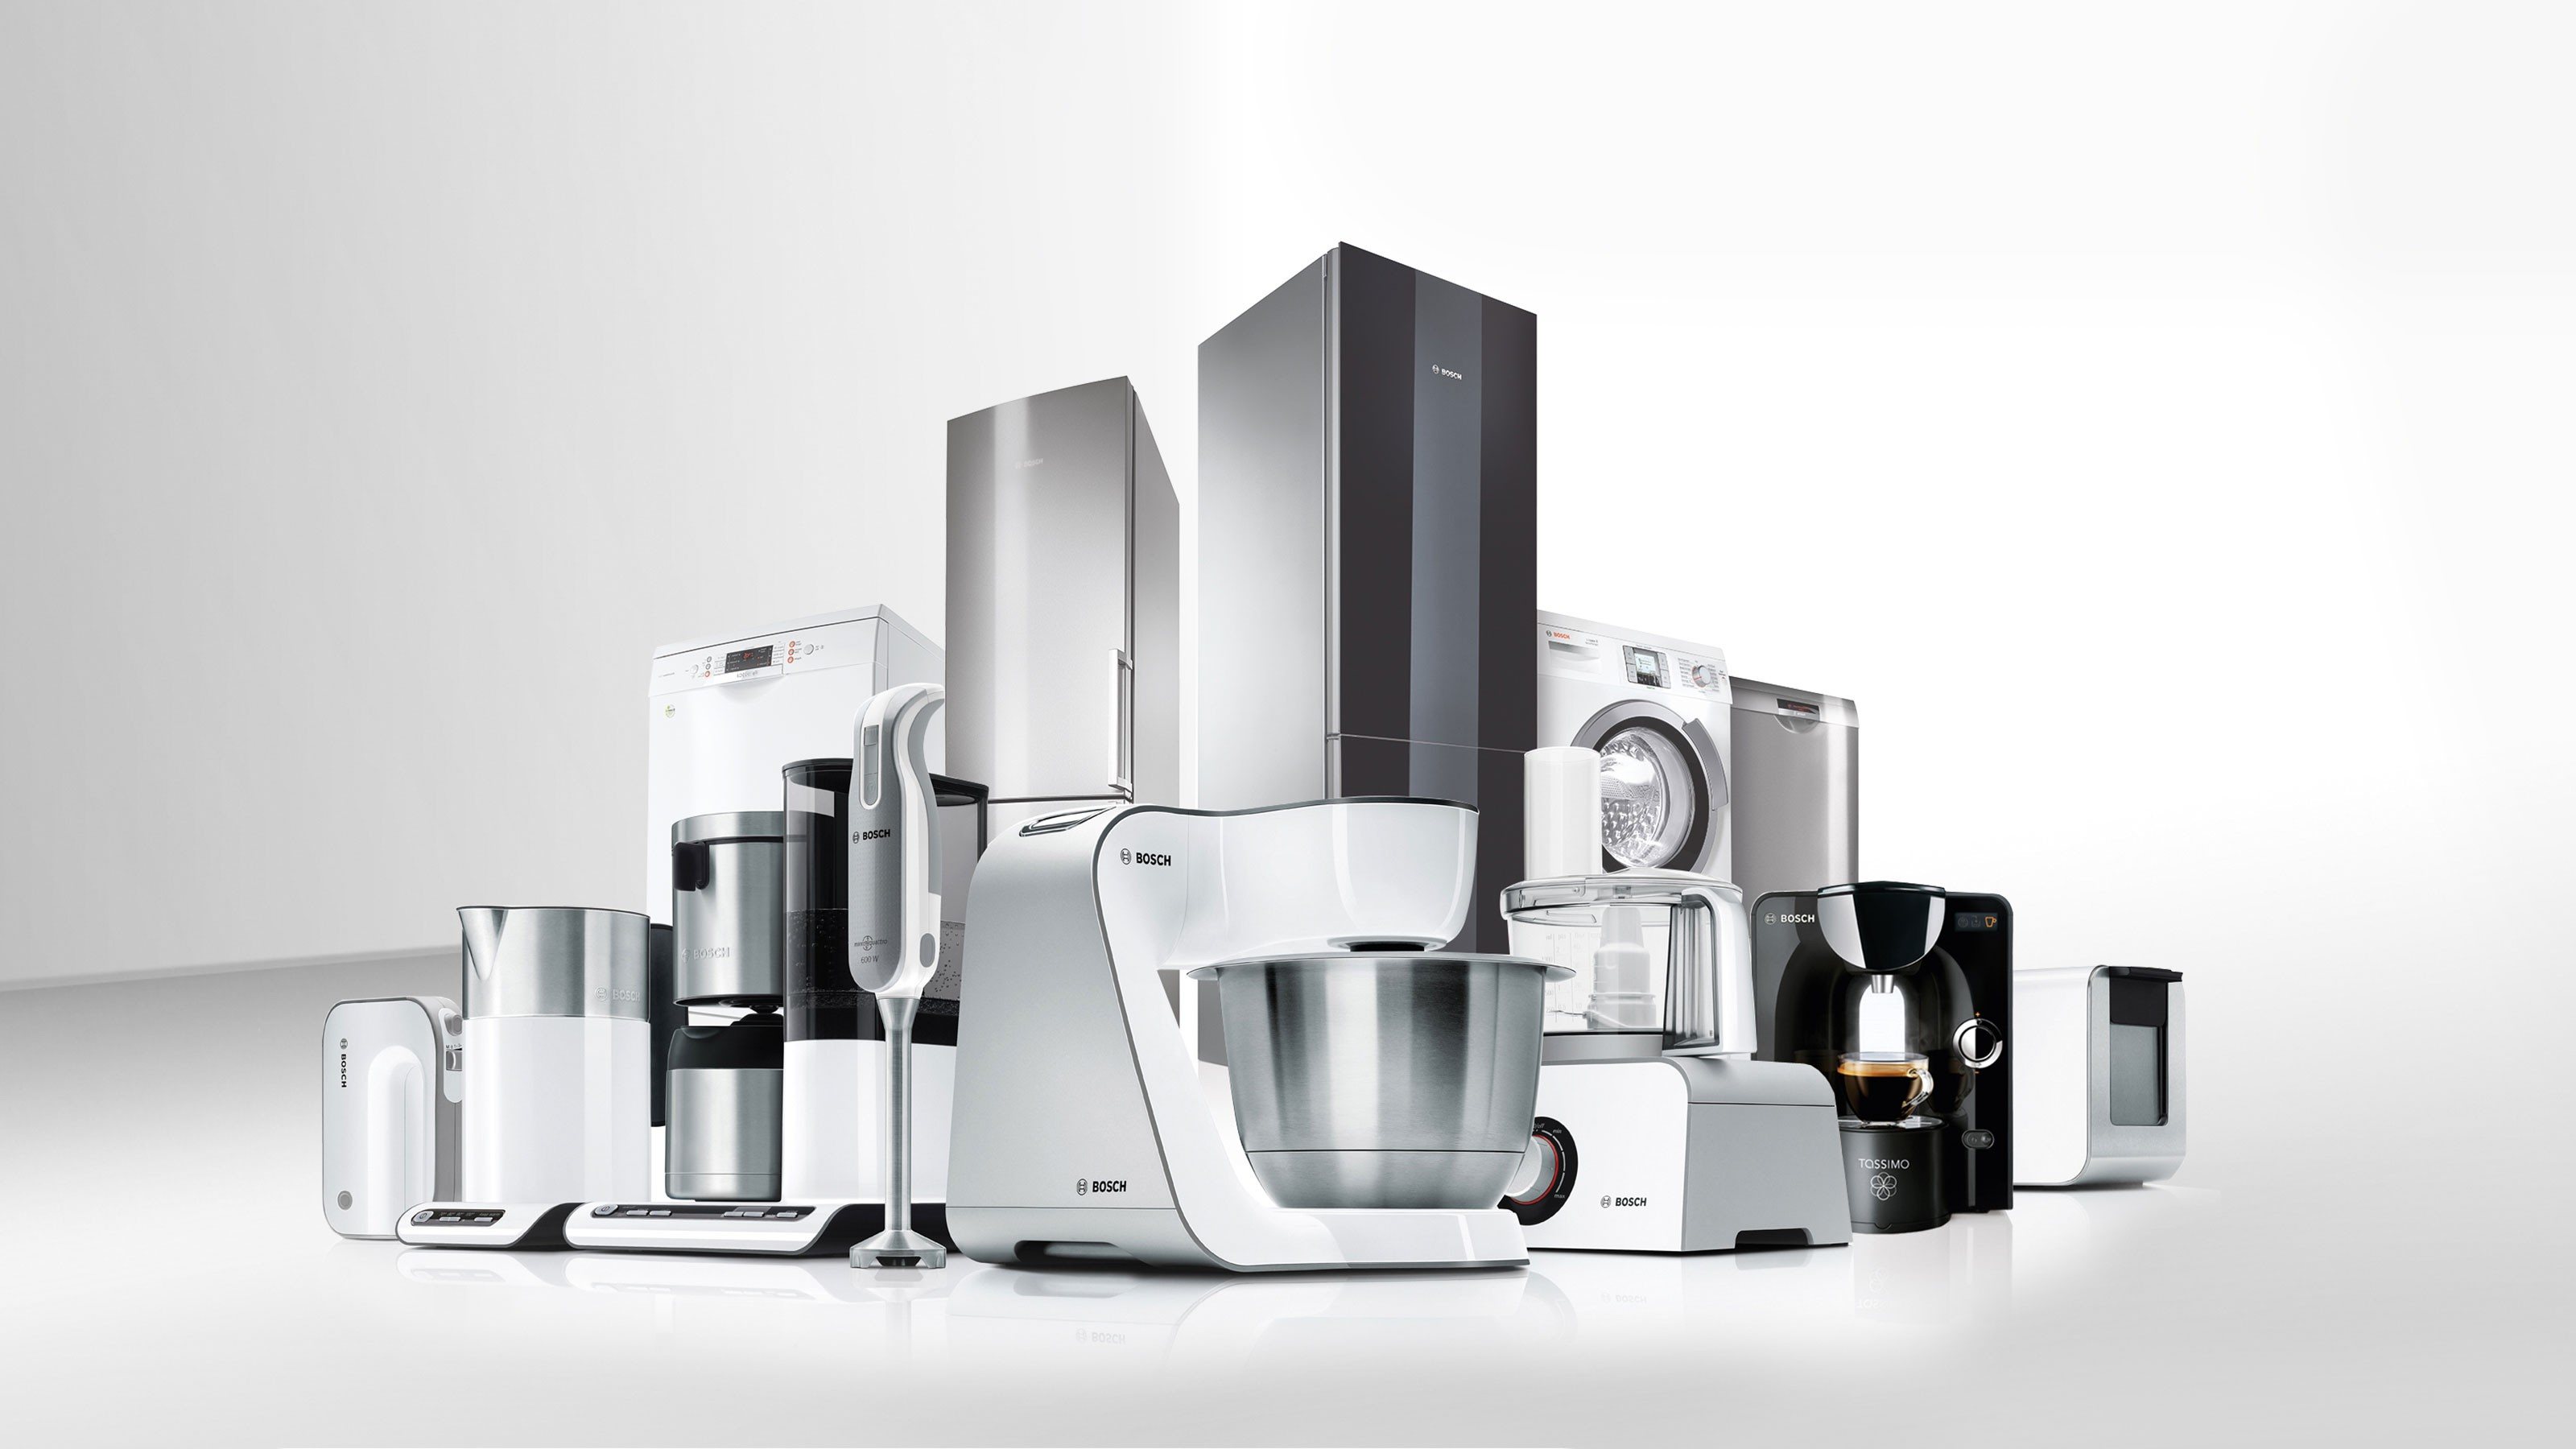 Domestic Heating Appliances Market Size 2020, Market Opportunities, Share  Analysis up to 2030 – Bulletin Line